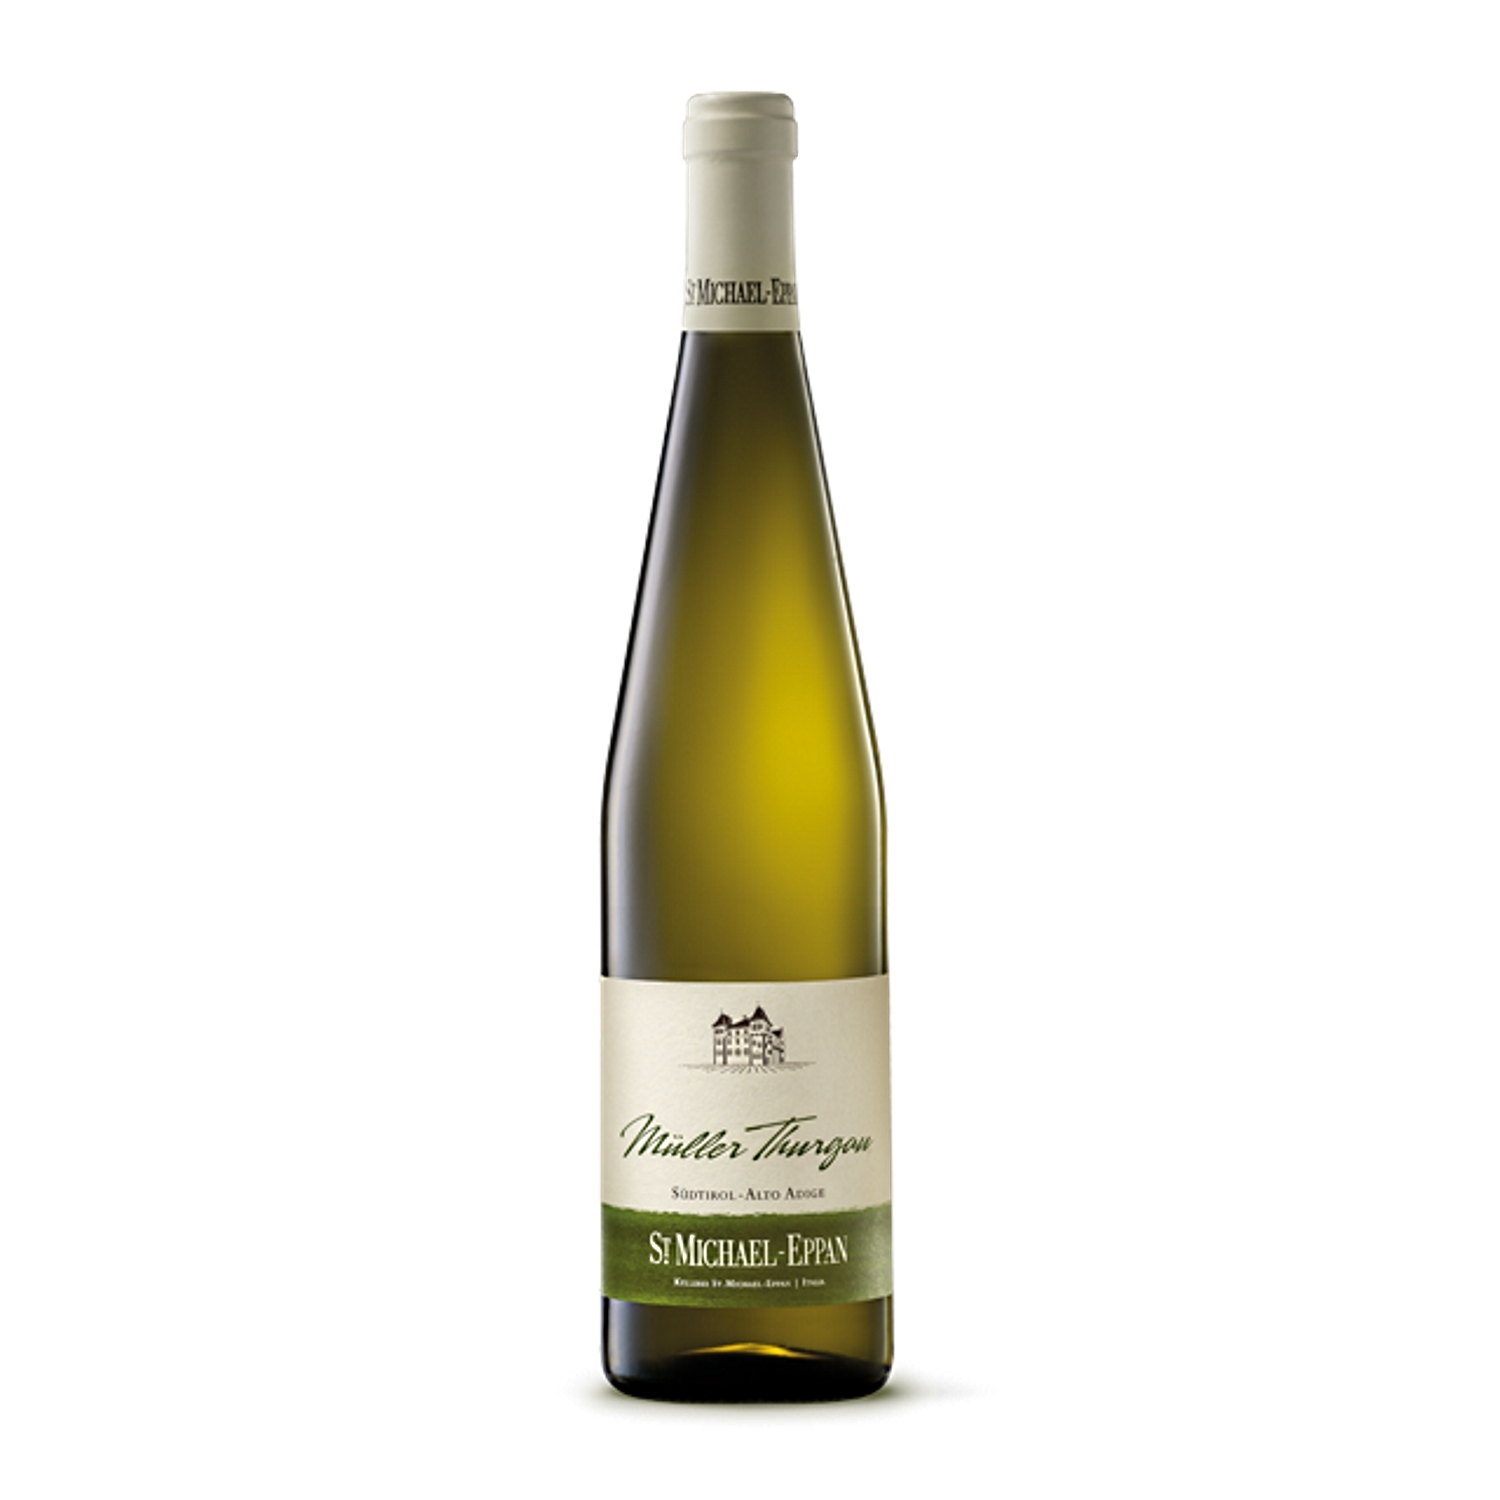 Müller Thurgau - 2018 - Winery S. Michele Appiano South Tyrol